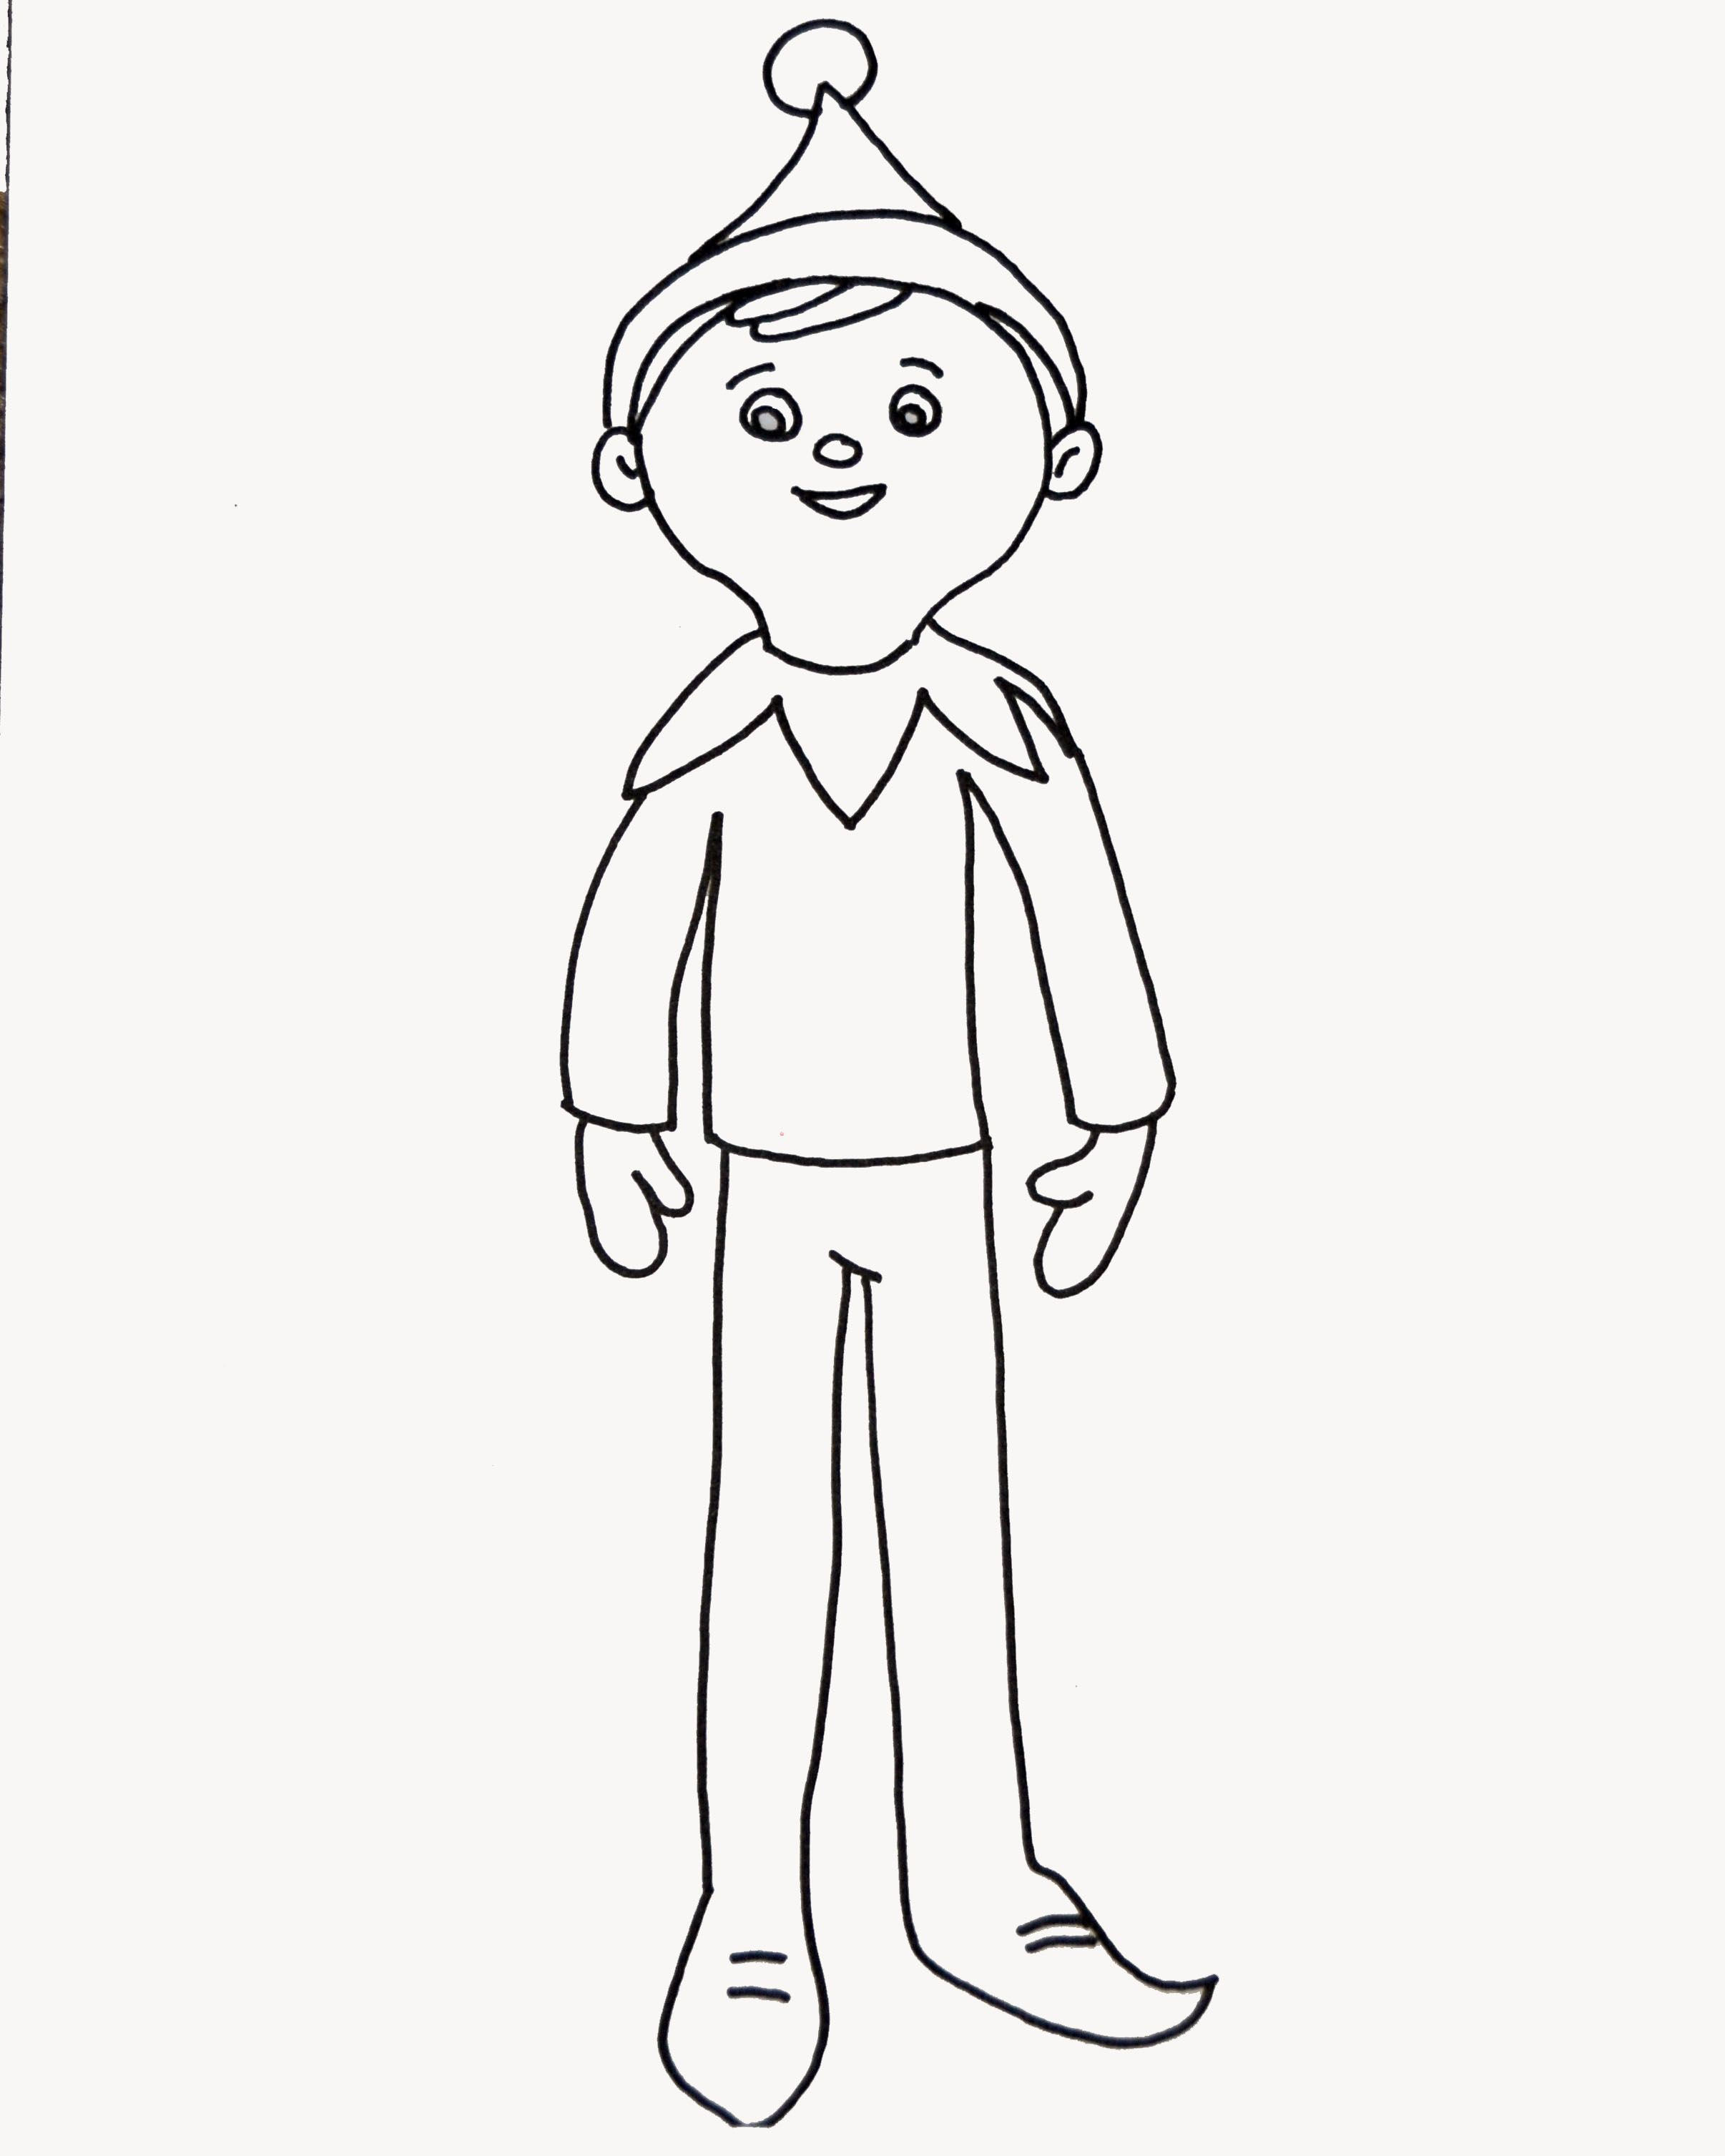 2412x3015 Elf On The Shelf Coloring Page For Elfie And The Kids To Colour